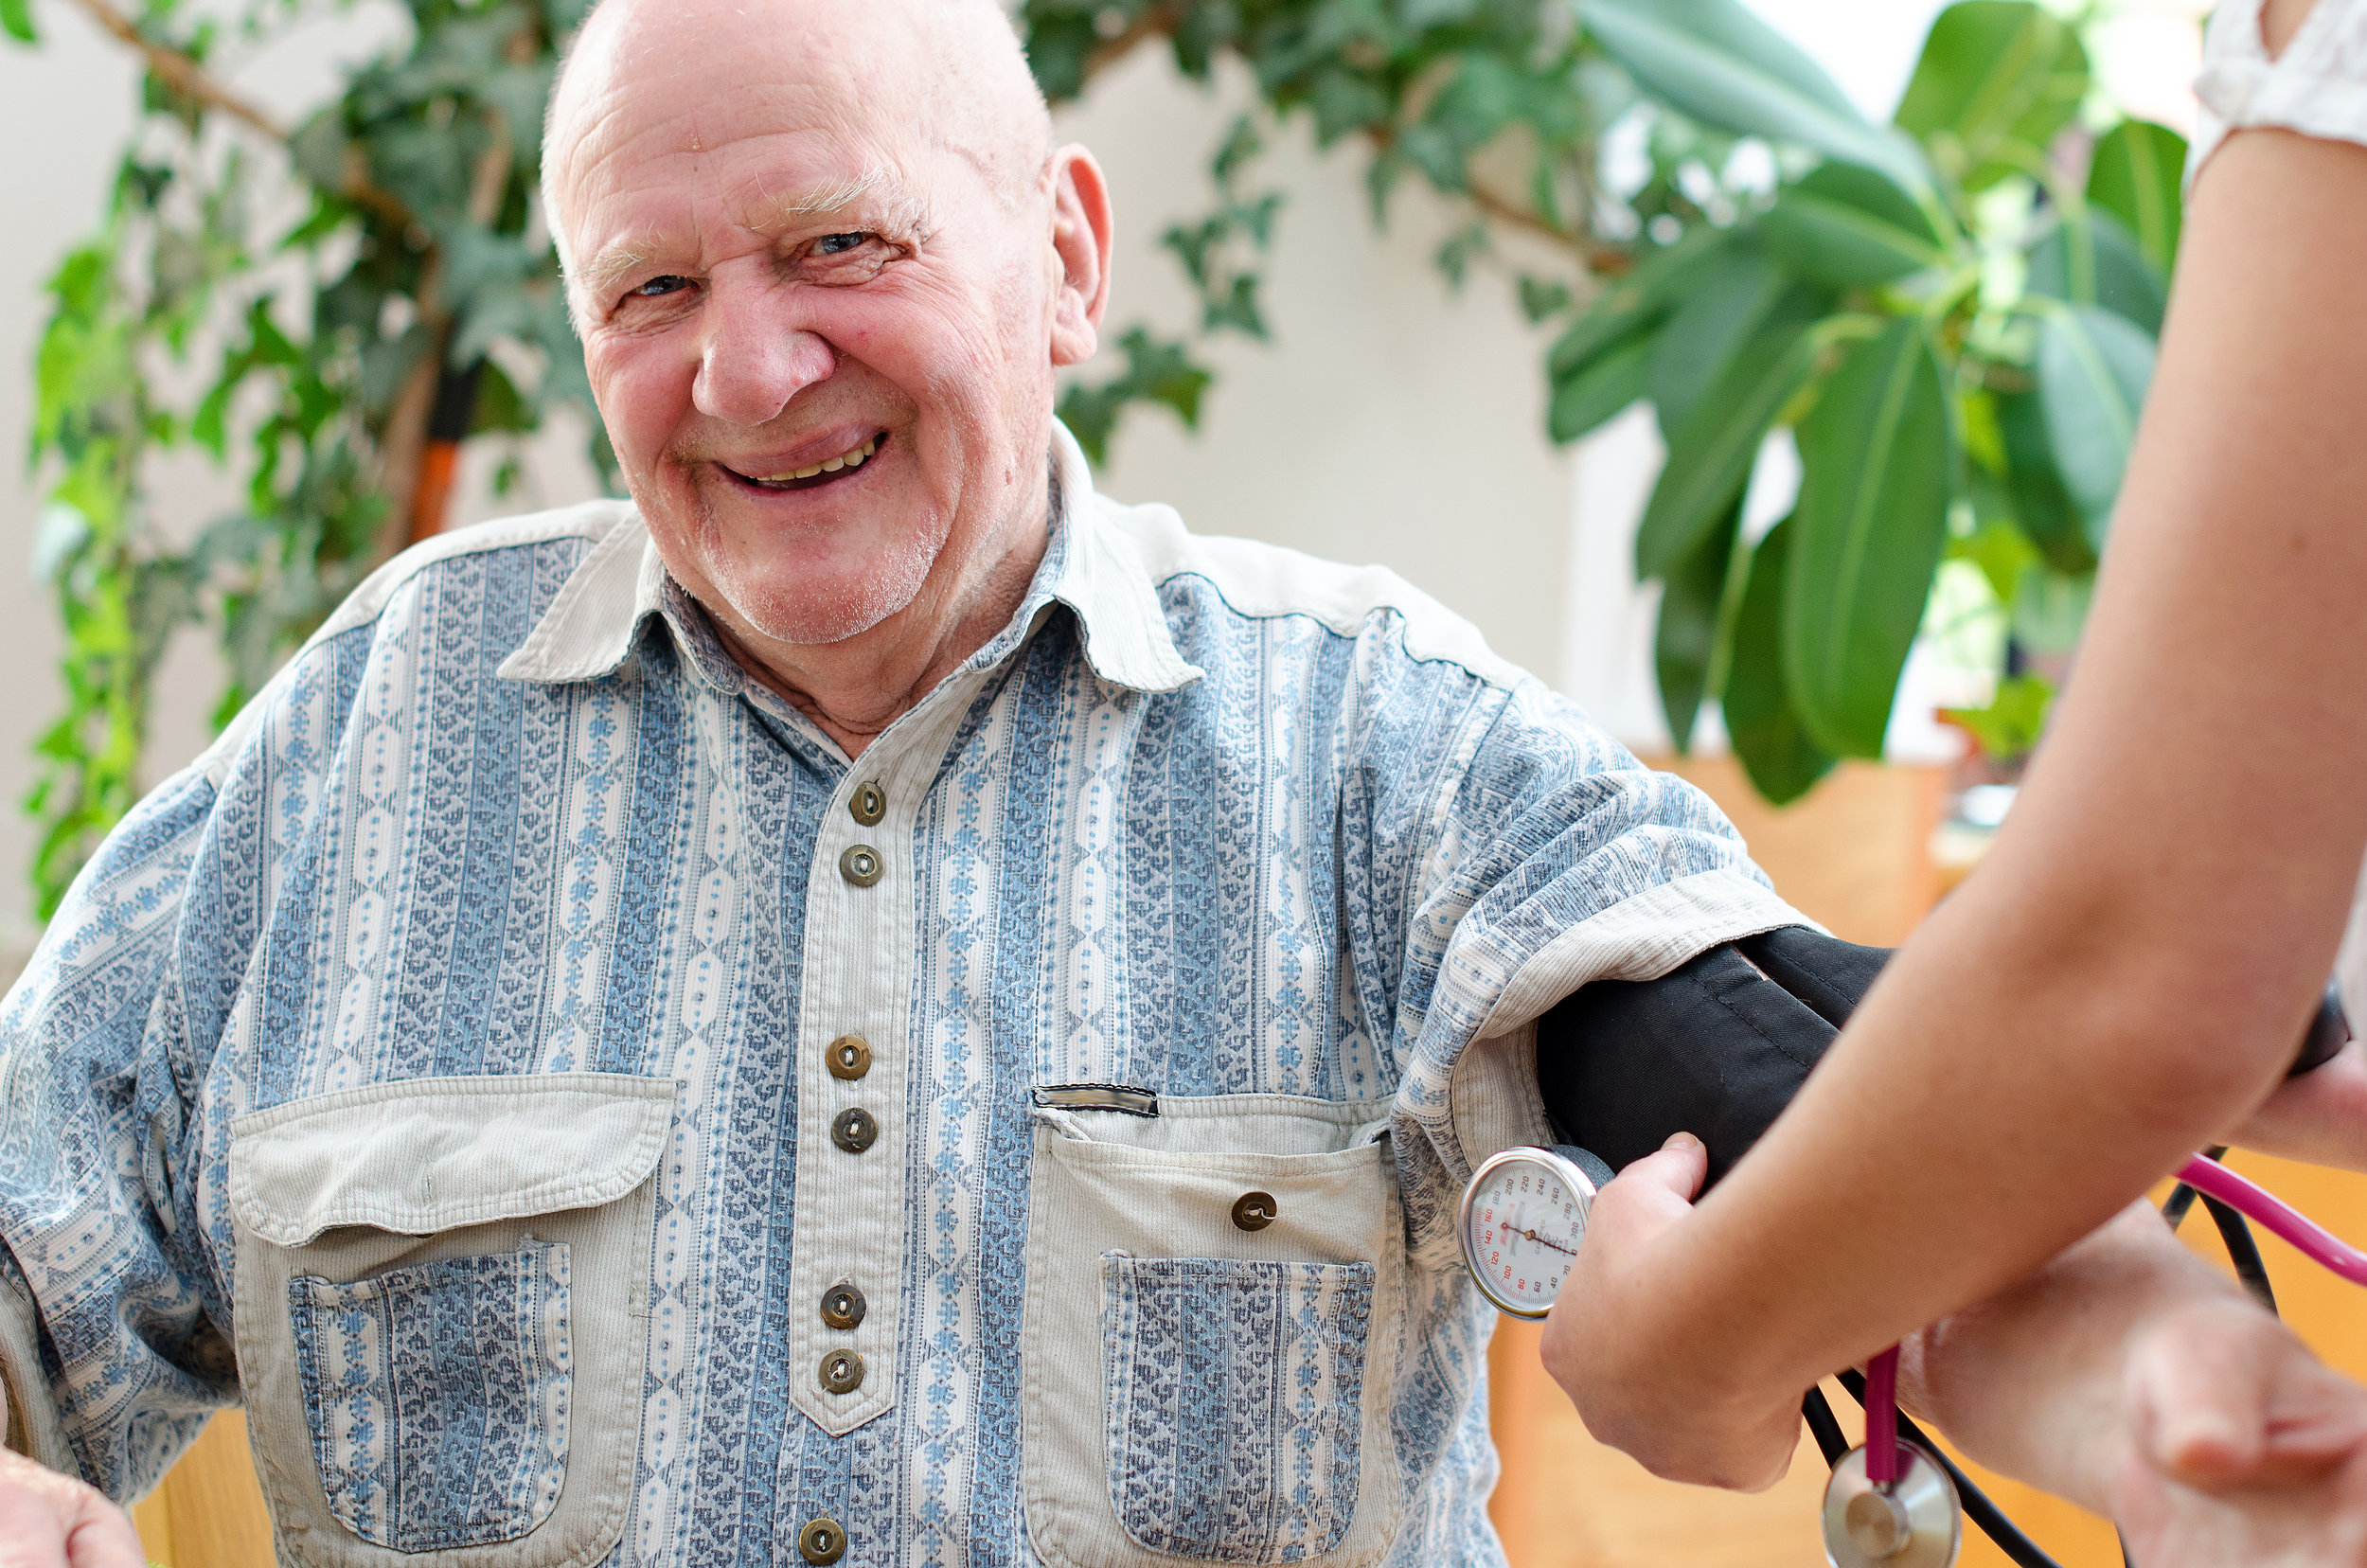 Man receiving blood pressure check at home